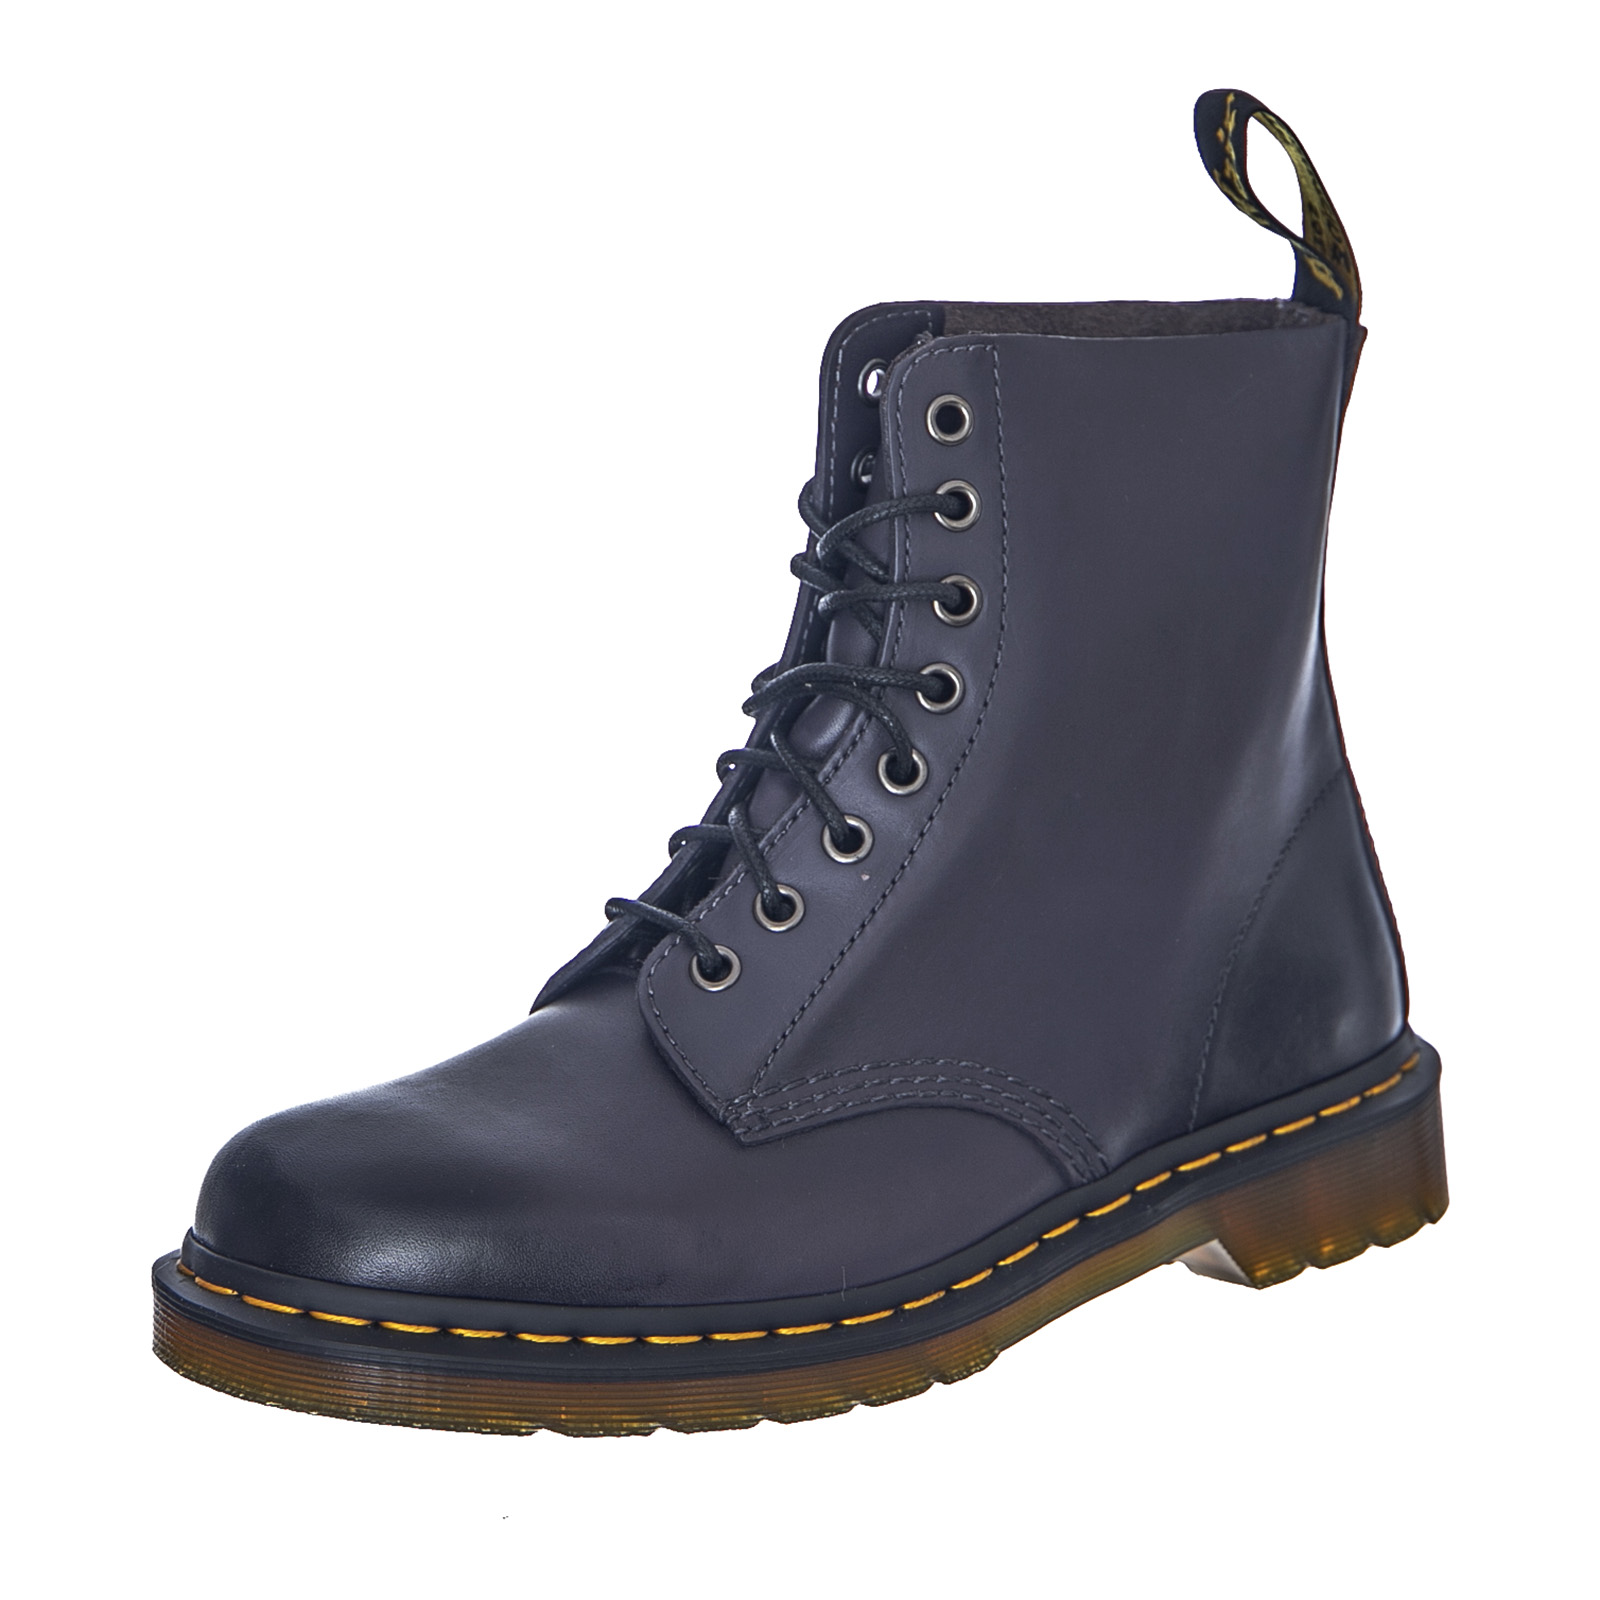 50% off huge inventory on sale Details about Dr.Martens Pascal Temperley - Charcoal - Women's Boots Violet